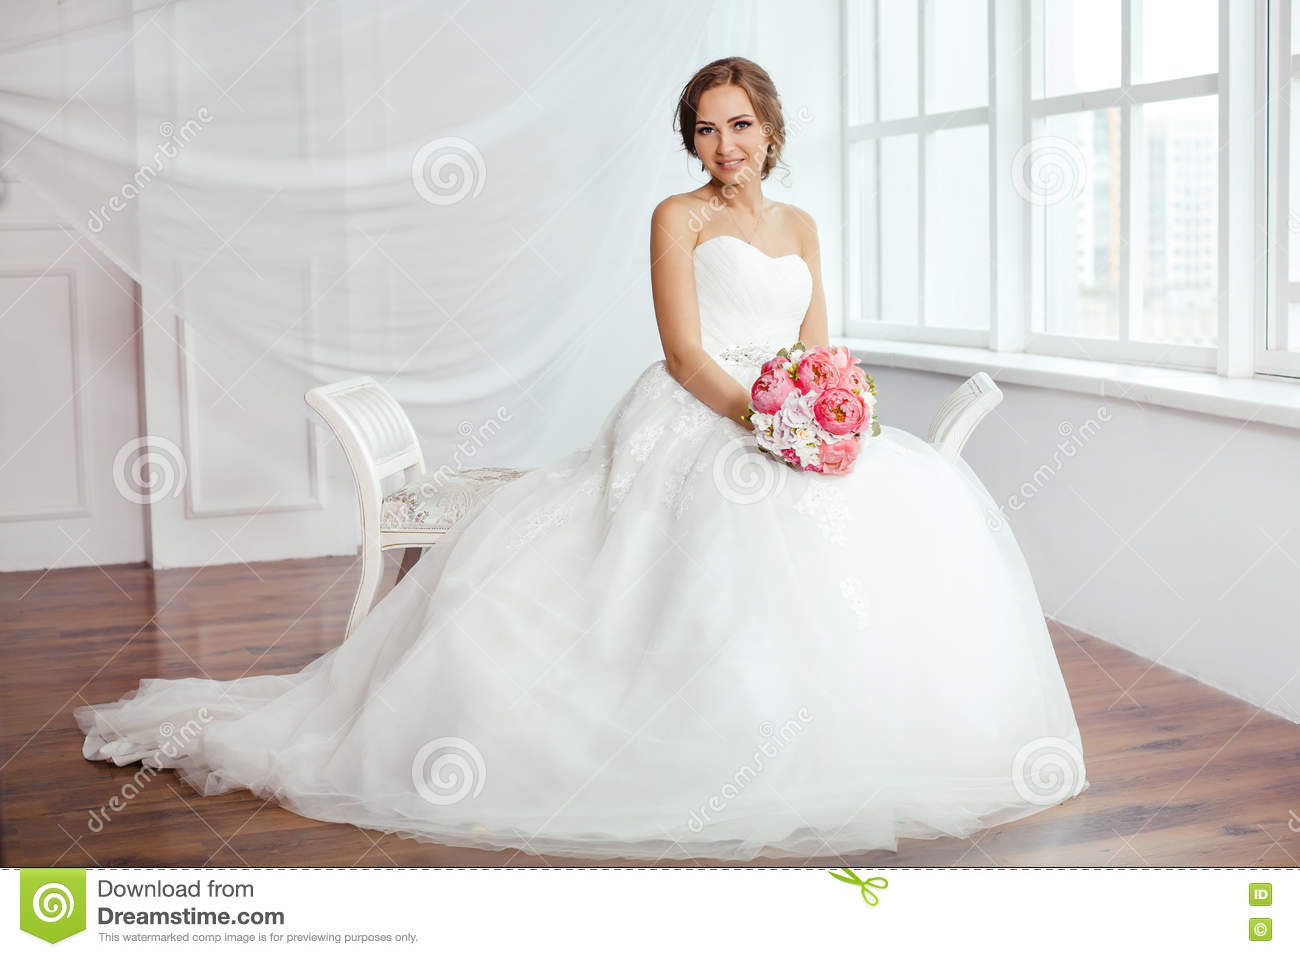 The Bride. Young Women With Wedding Dress In Very Bright Room, Stock ...